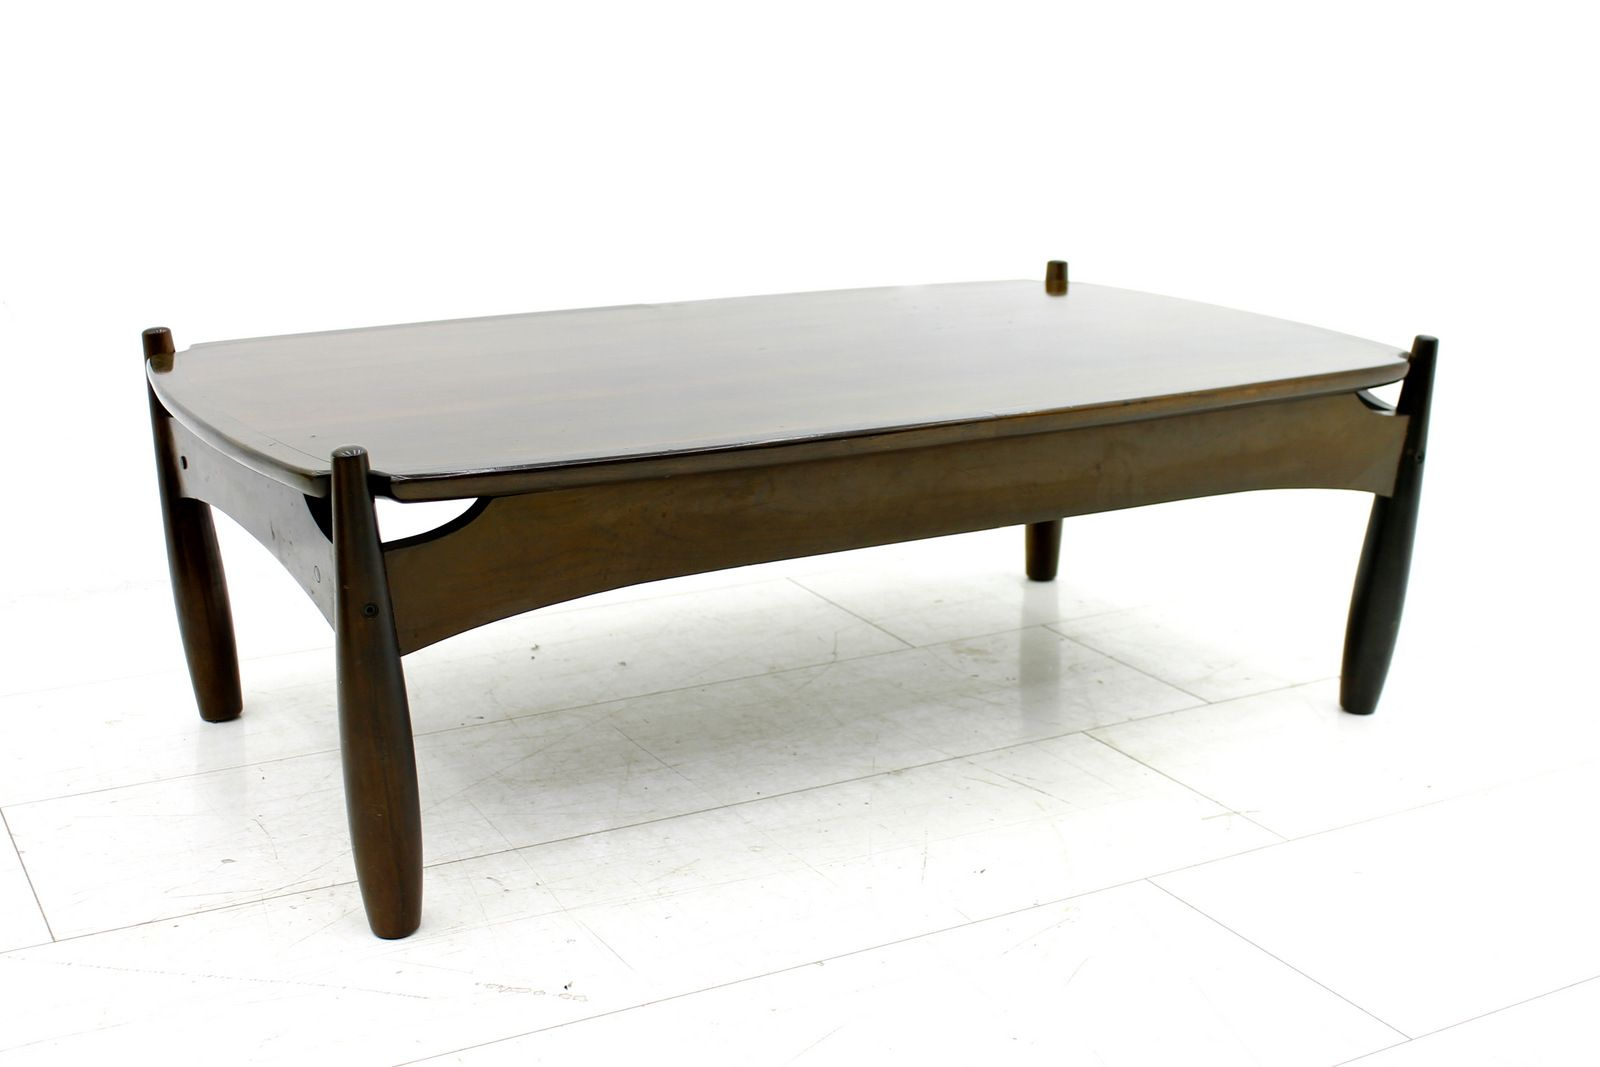 Mole series coffee table by sergio rodrigues 1962 for for Serie a table 99 00